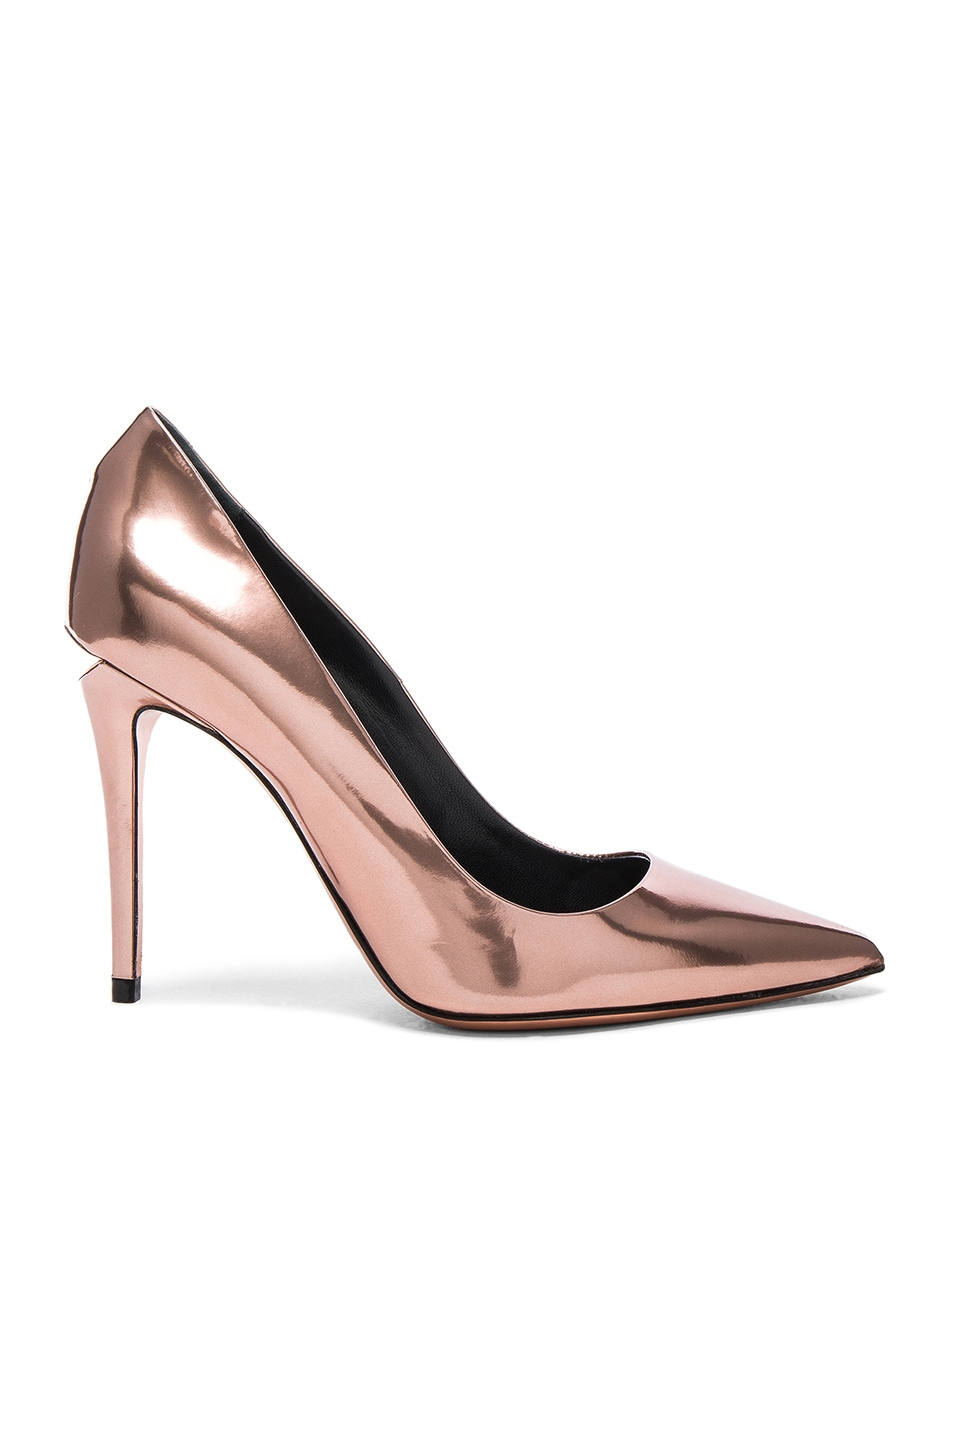 Image 1 of Alexander Wang Leather Tia Mirror Heels in Rose Gold